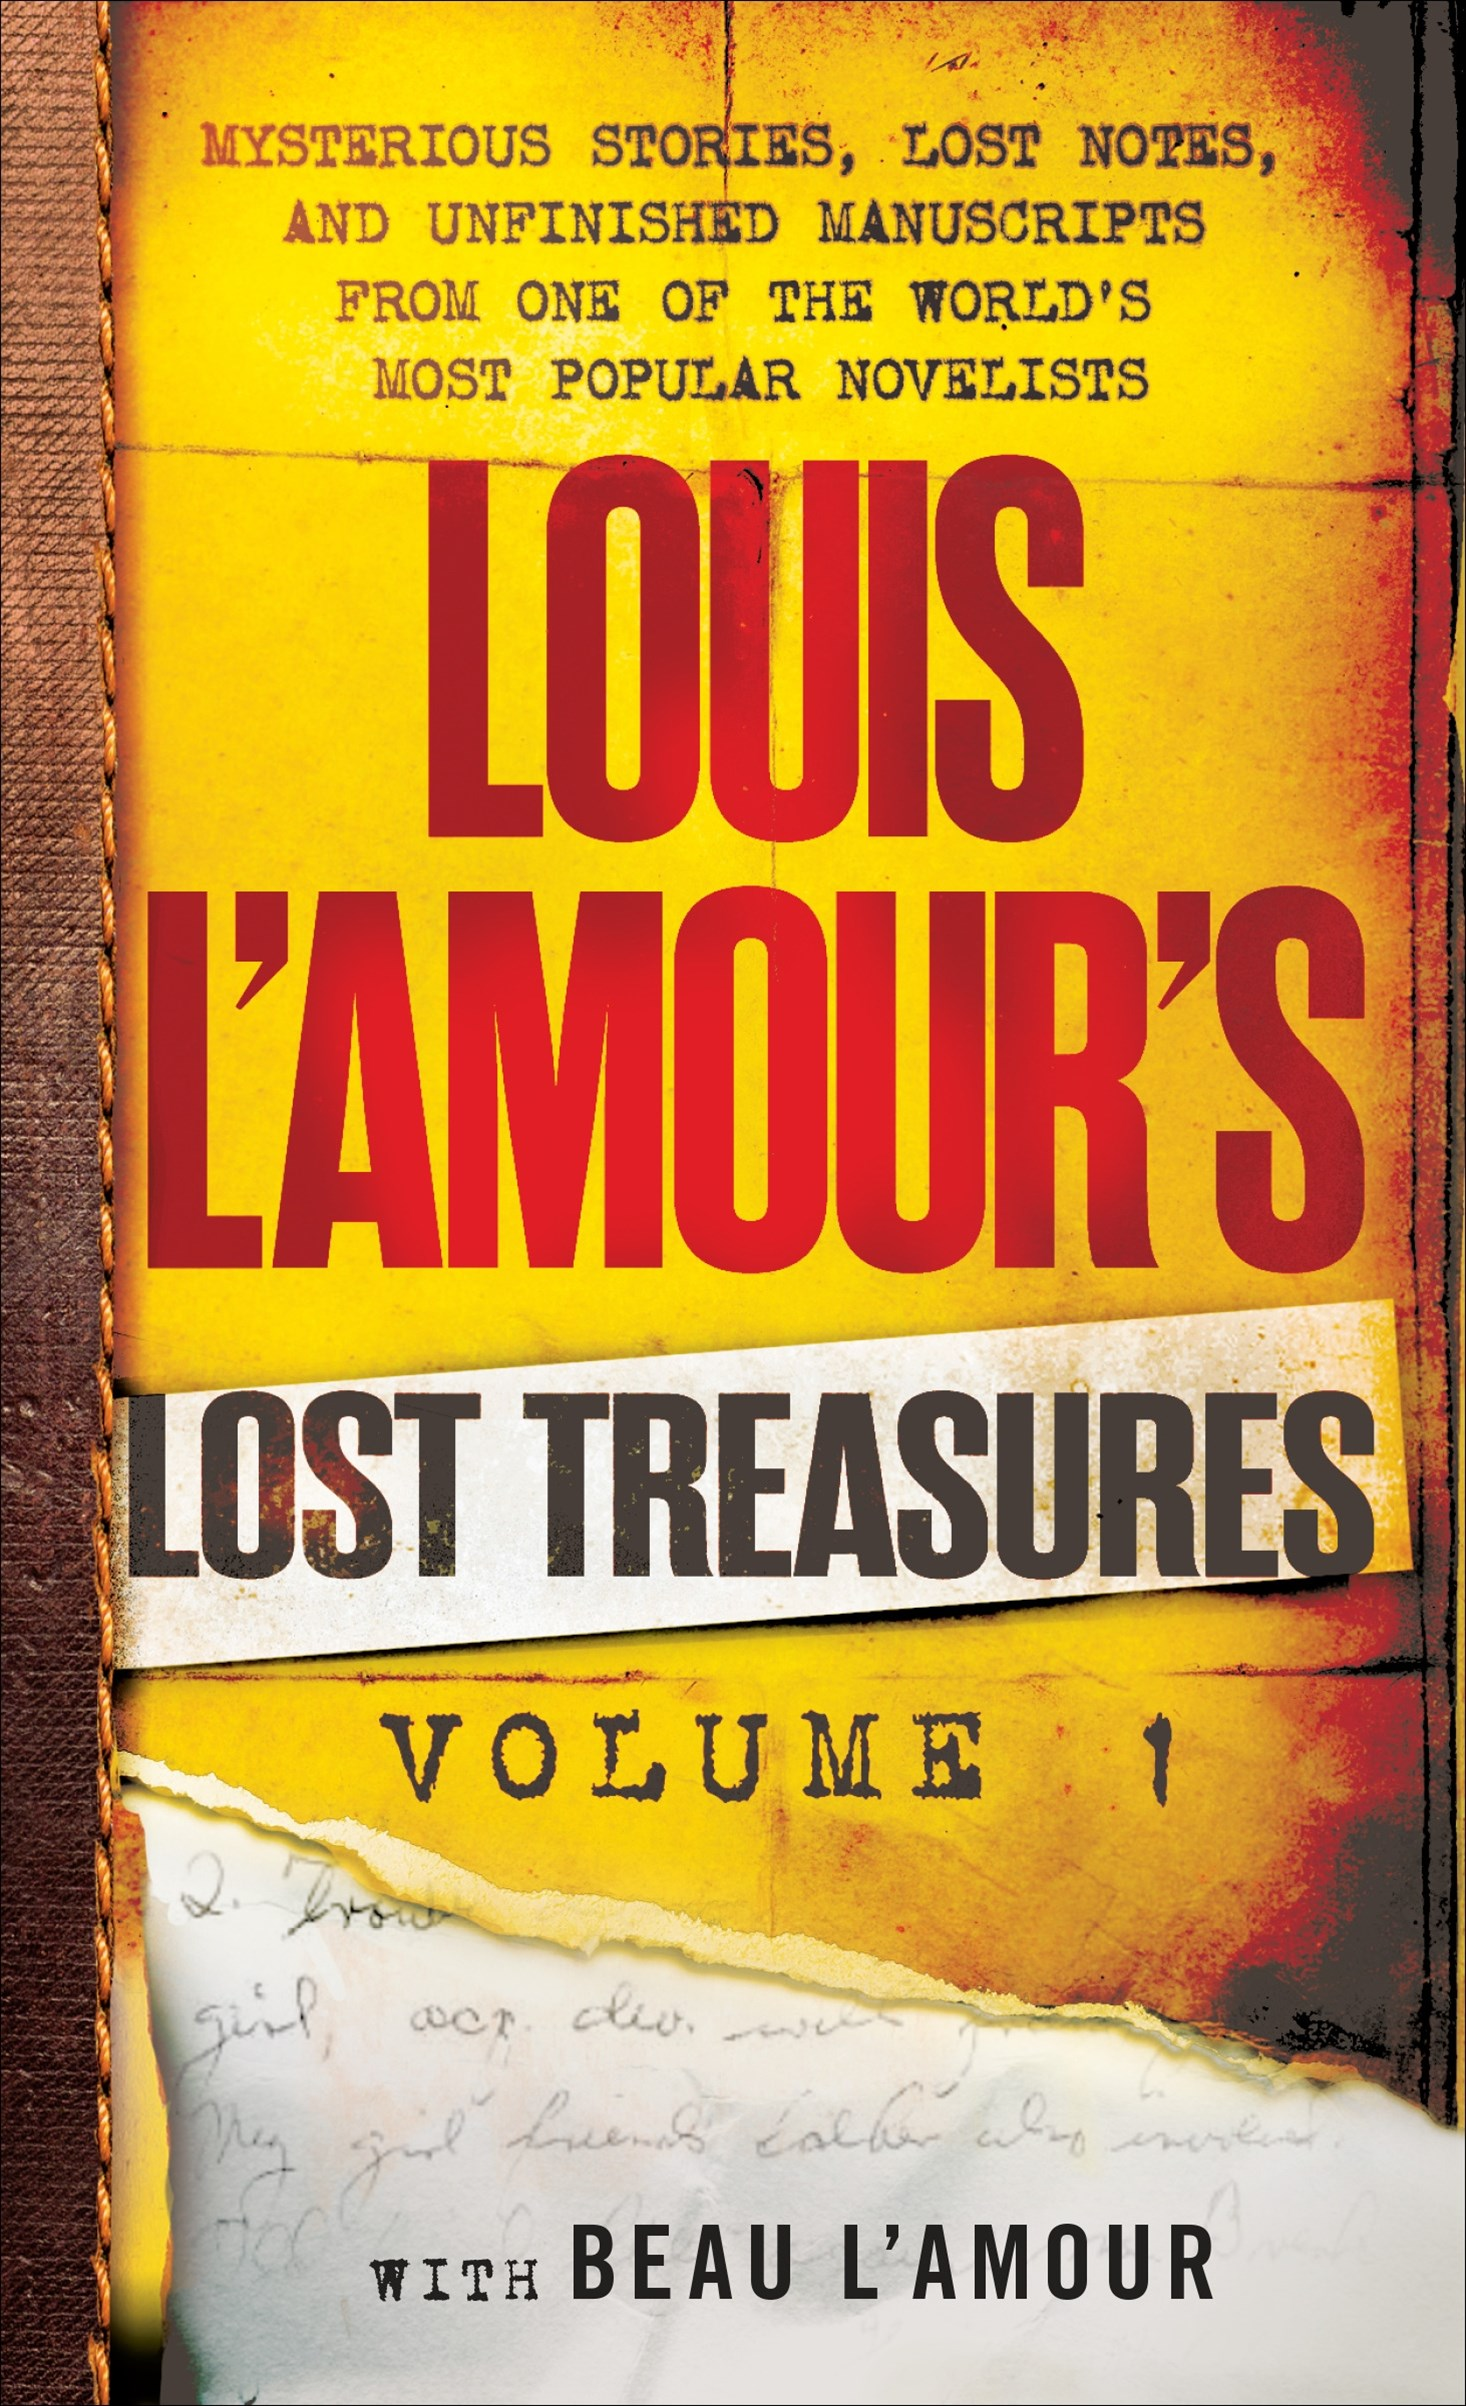 Louis L'amour's Lost Treasures Volume 1